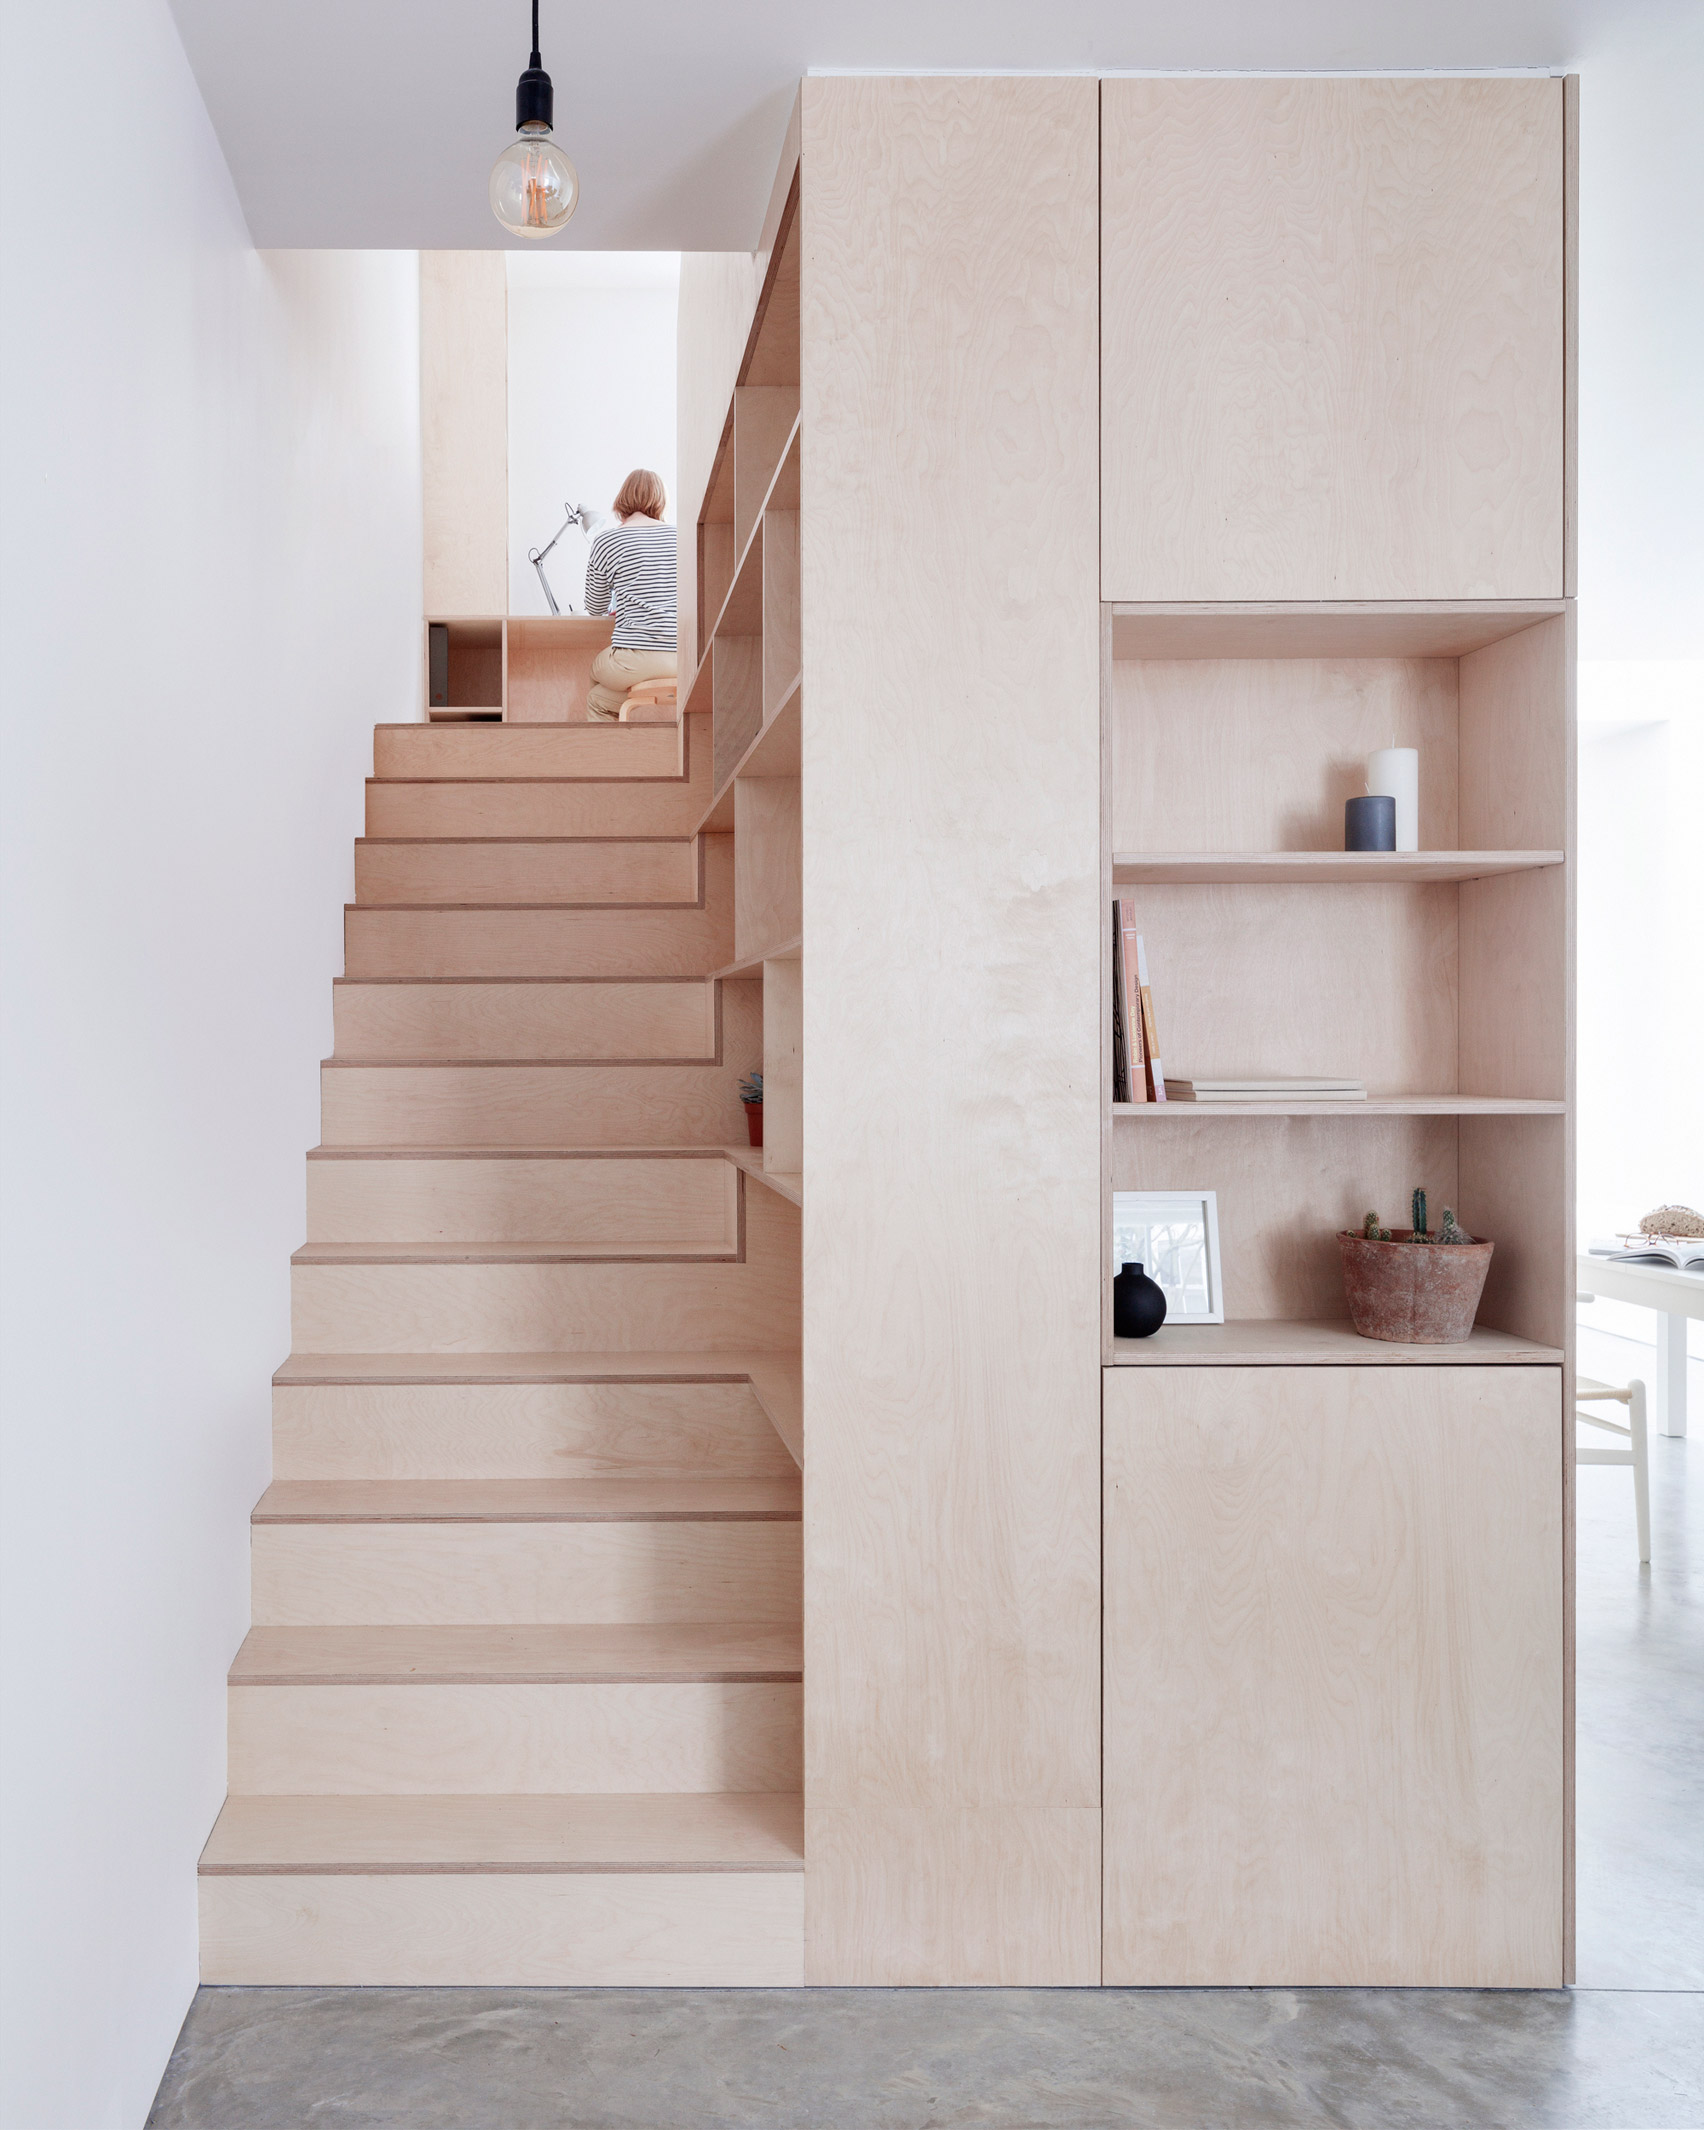 Larissa Johnston arranges minimal London home around plywood box